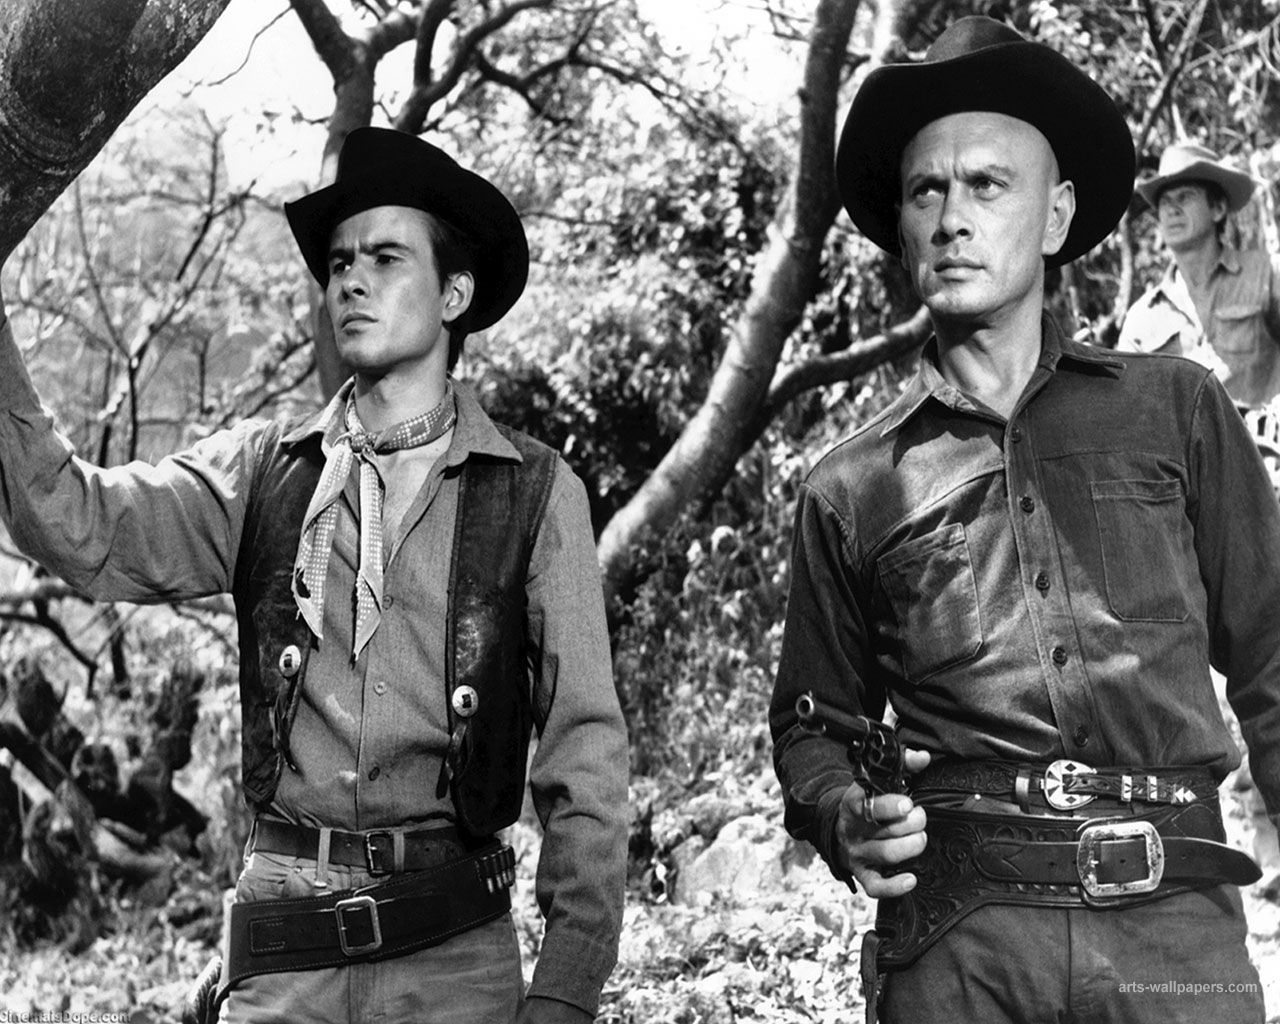 Yule Brynner and Horst Buchholz in The Magnificent Seven ...